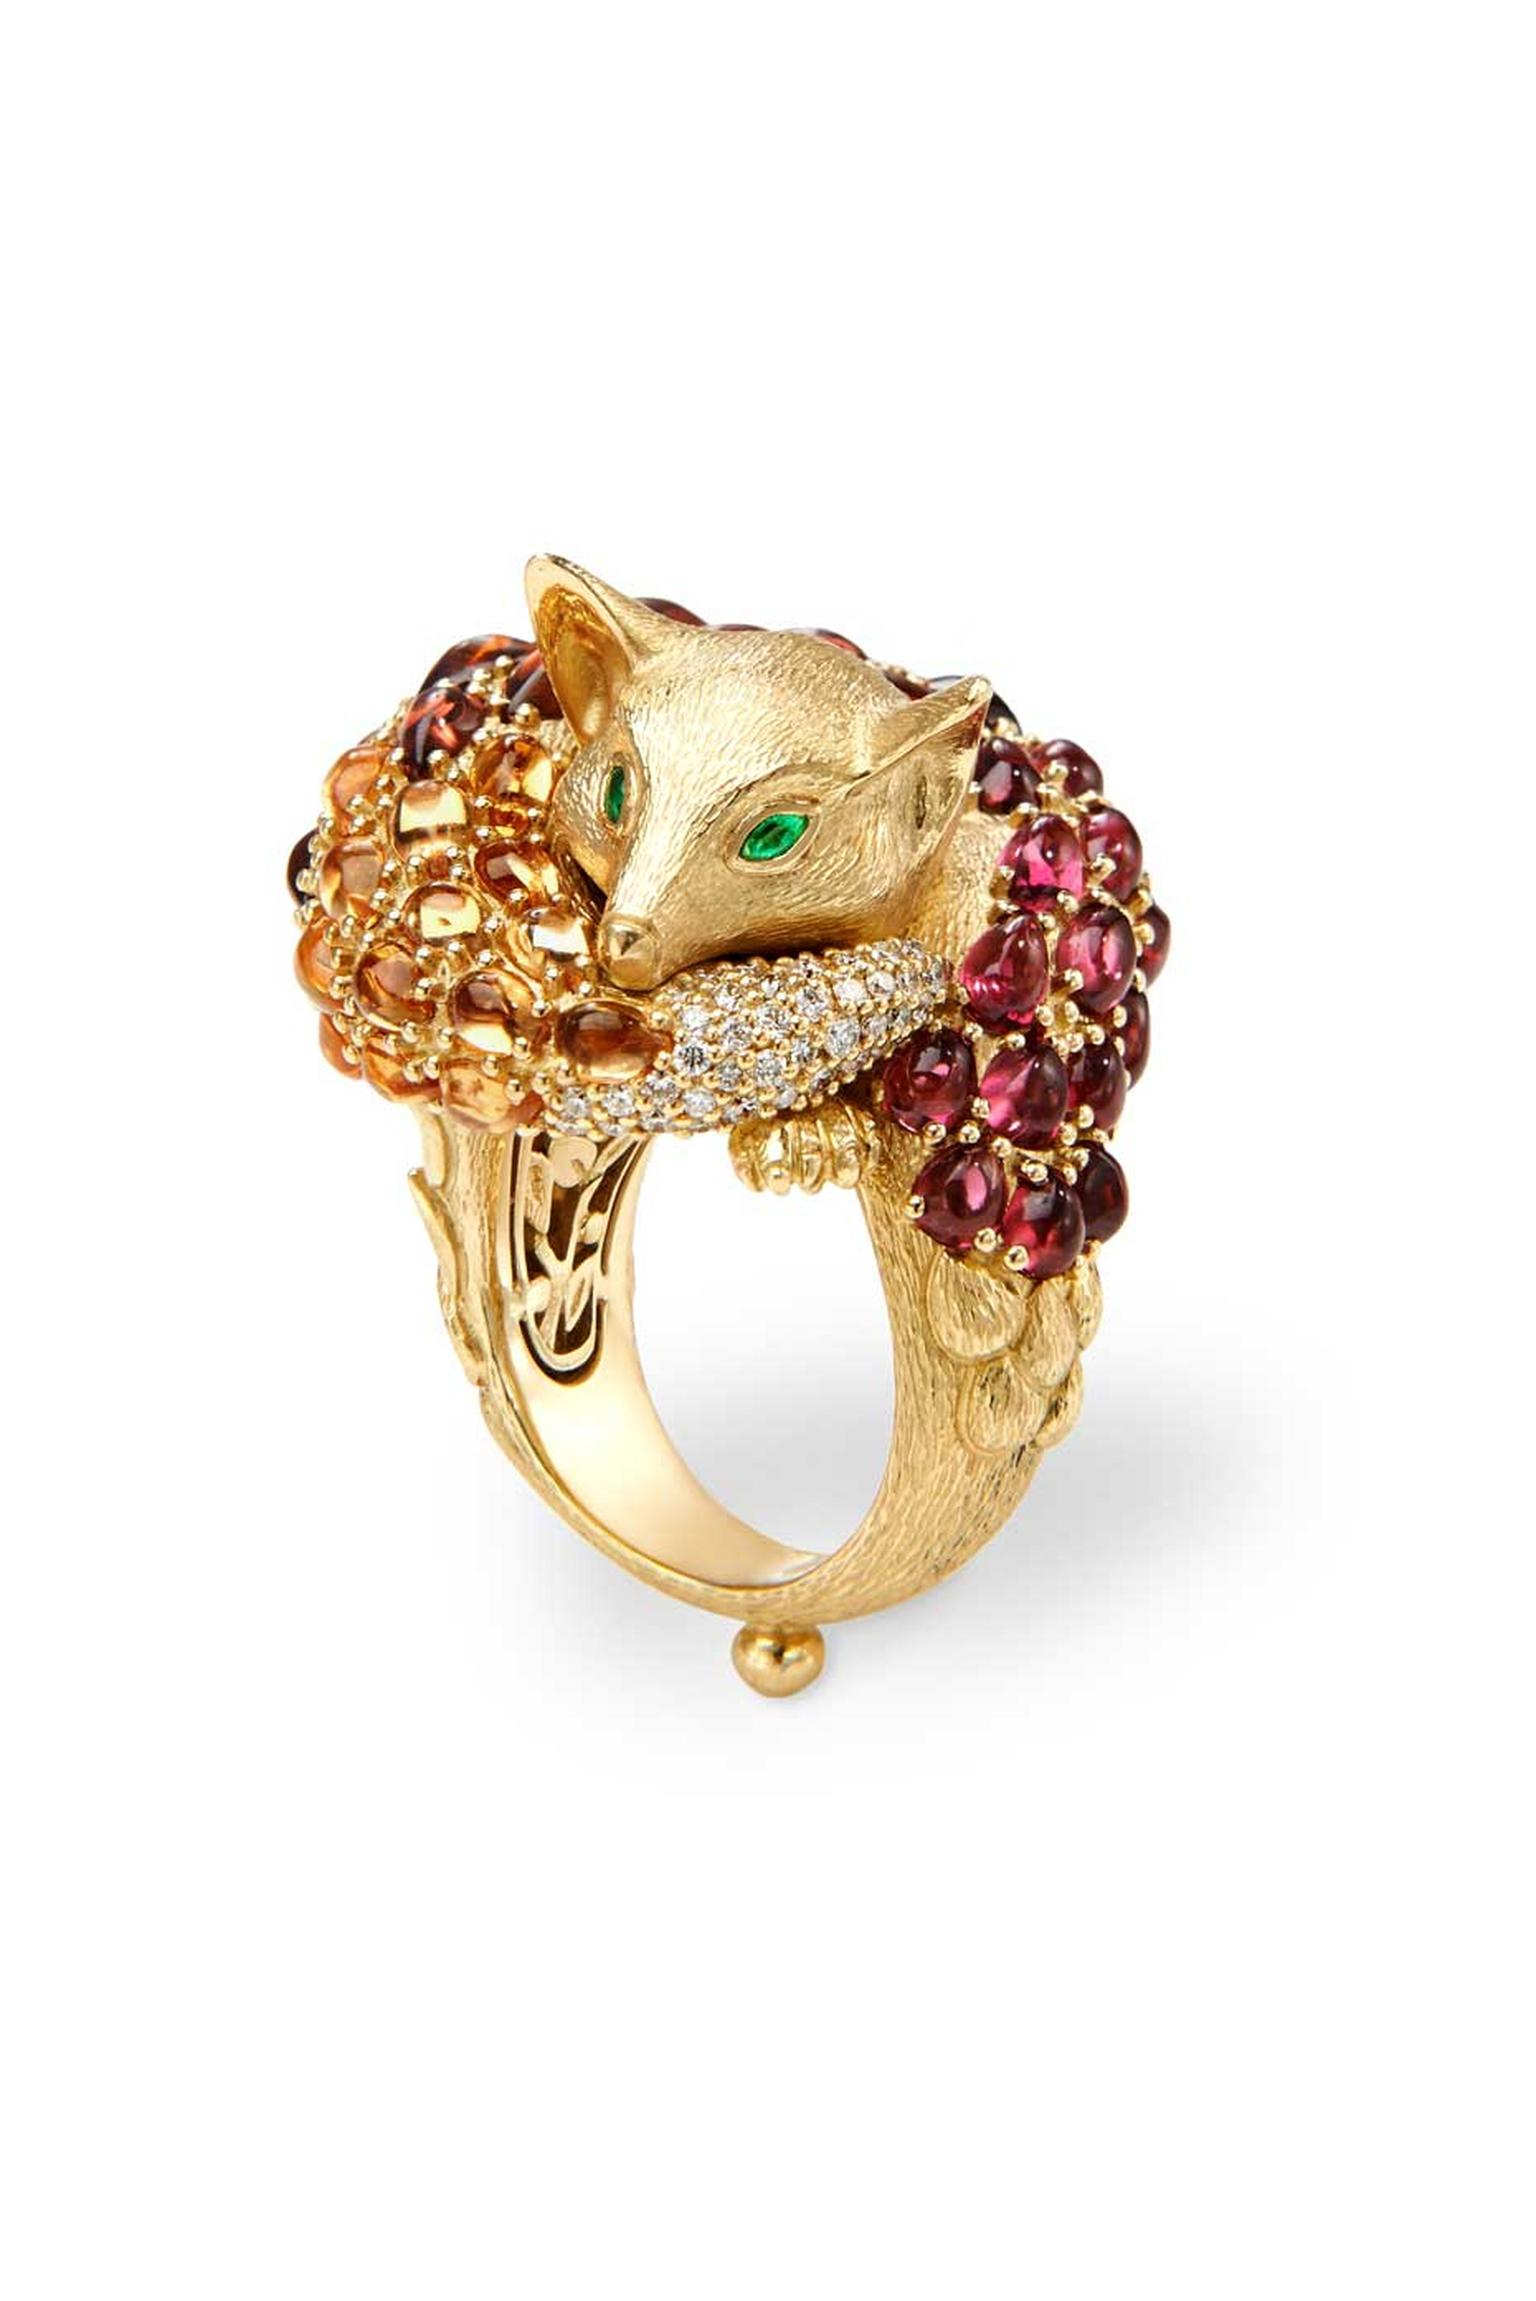 The help of a Florentine chiseler was required to achieve the textured, fur-like surface on this stunning Temple St. Clair Sleeping Fox ring.